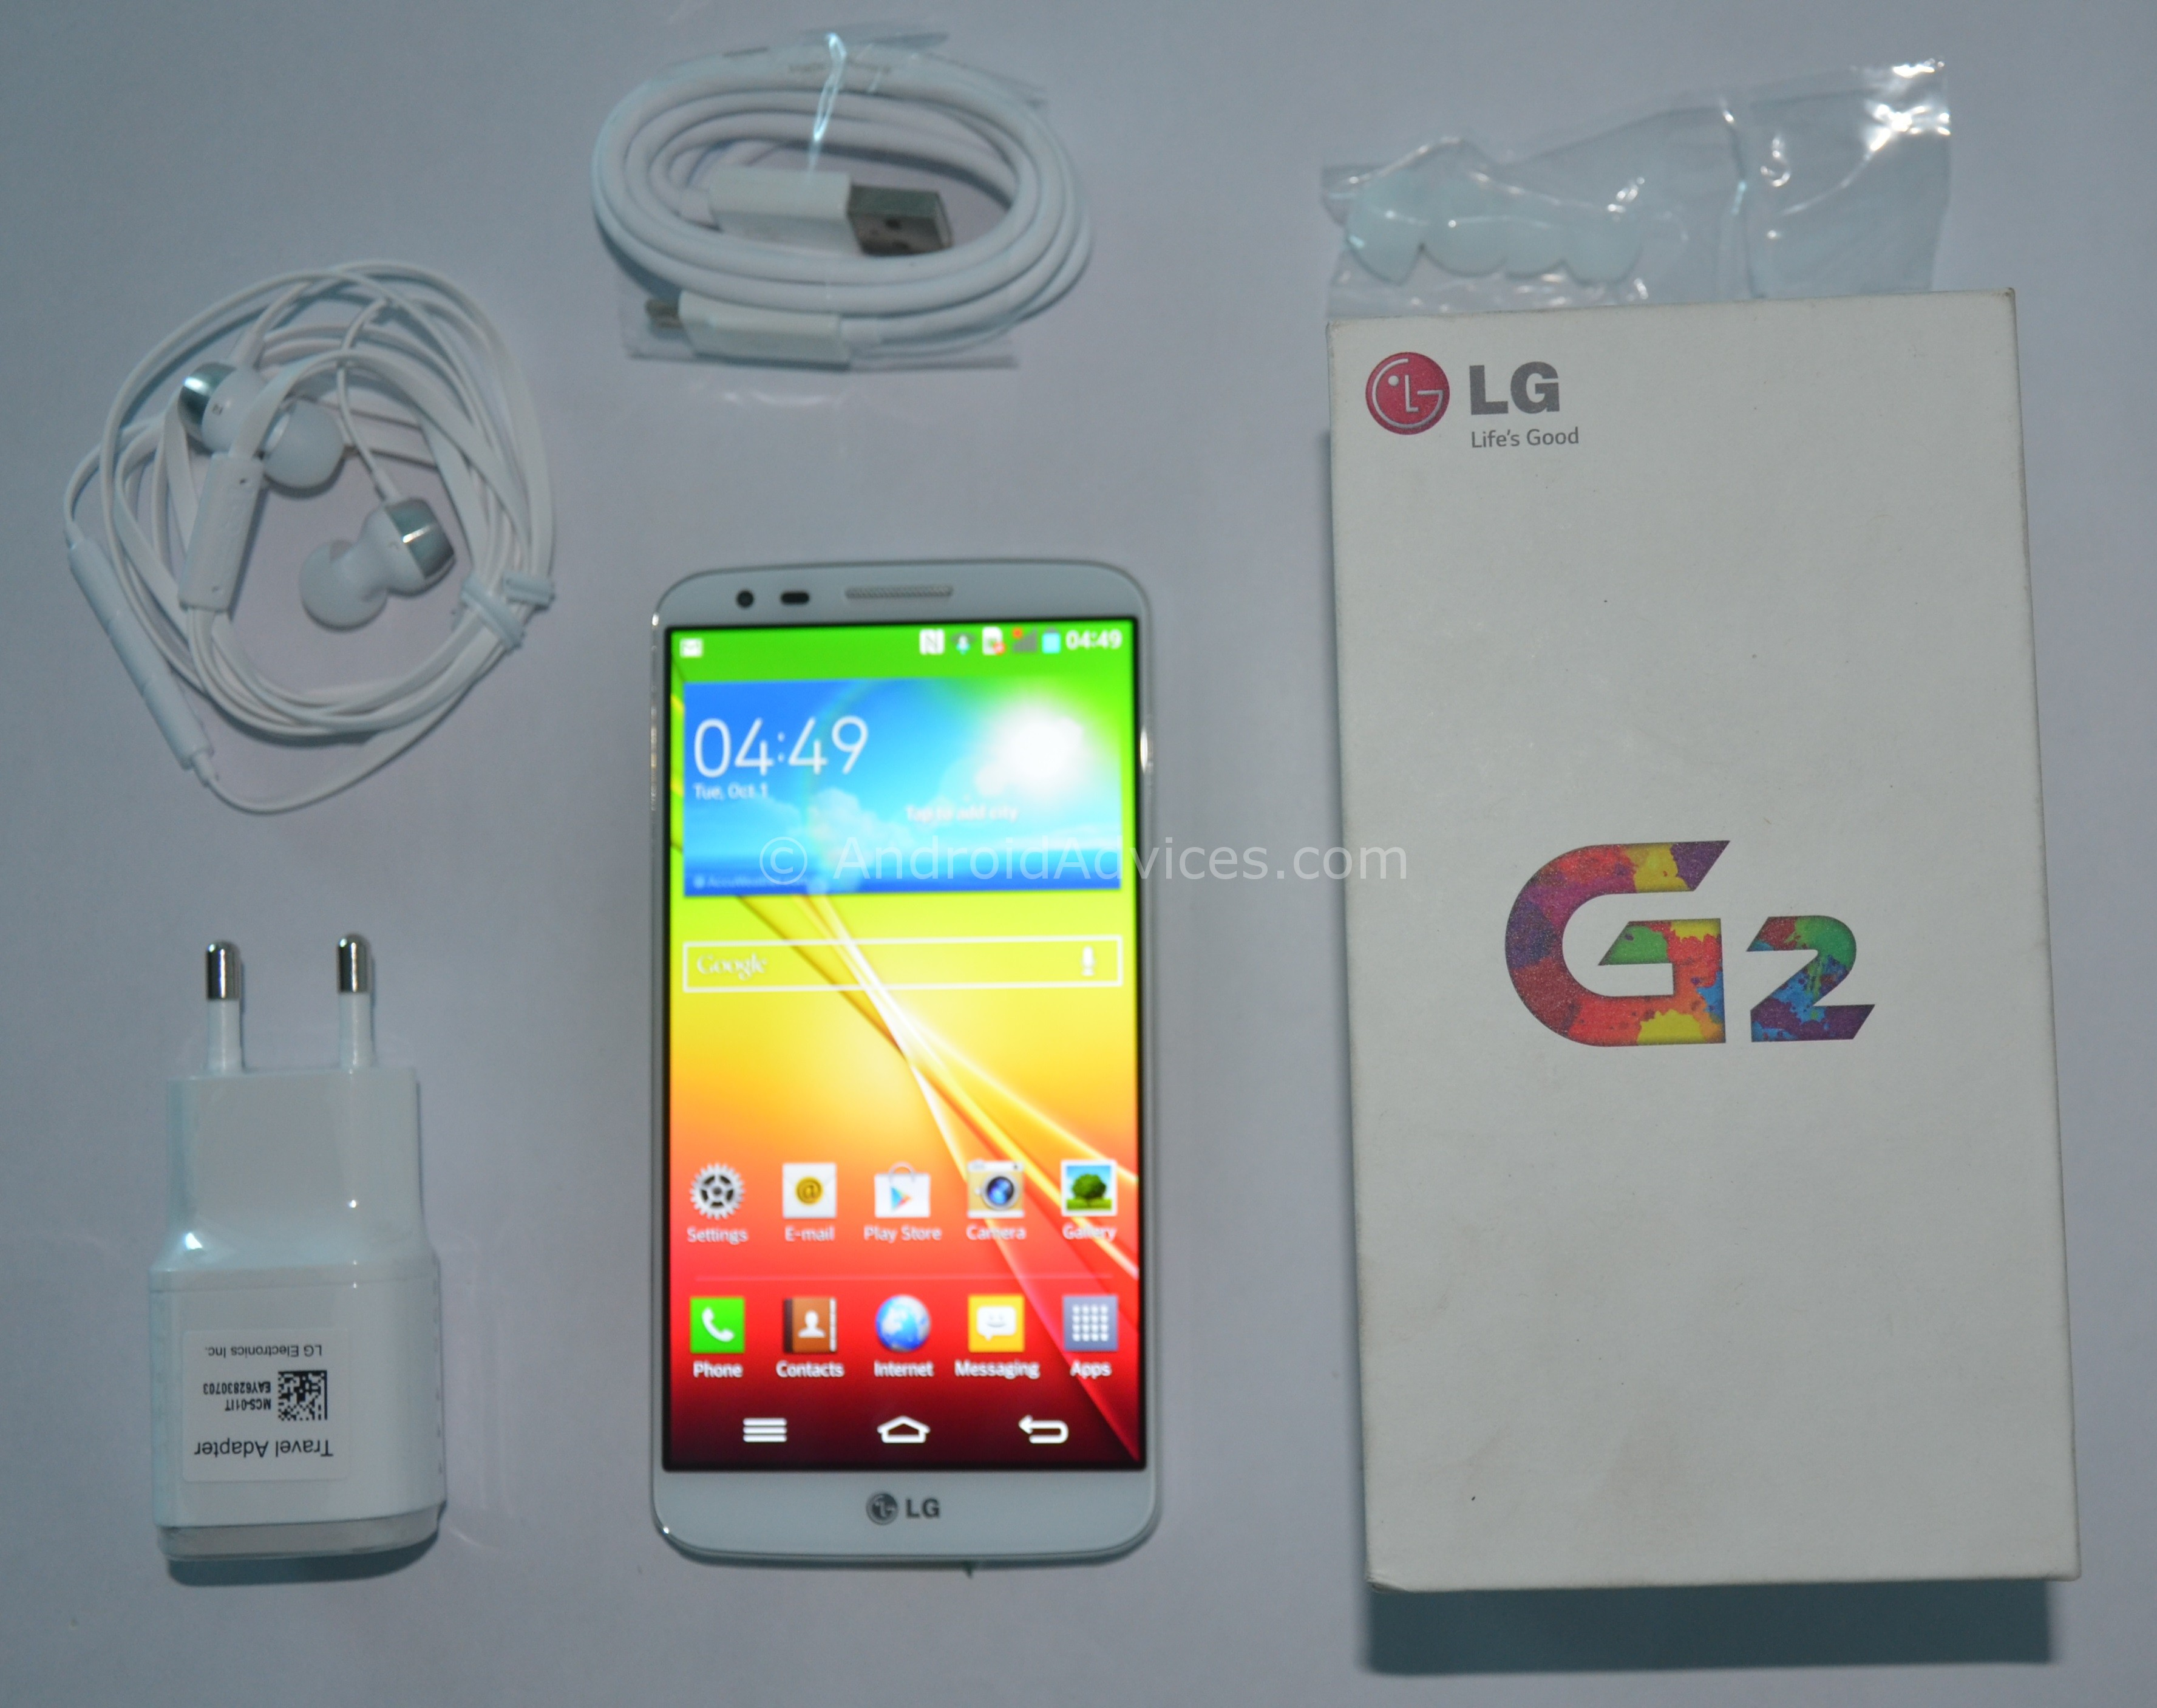 LG G2 Unboxing & Hands-On Demo - Android Smart Phone with 13Mp OIS